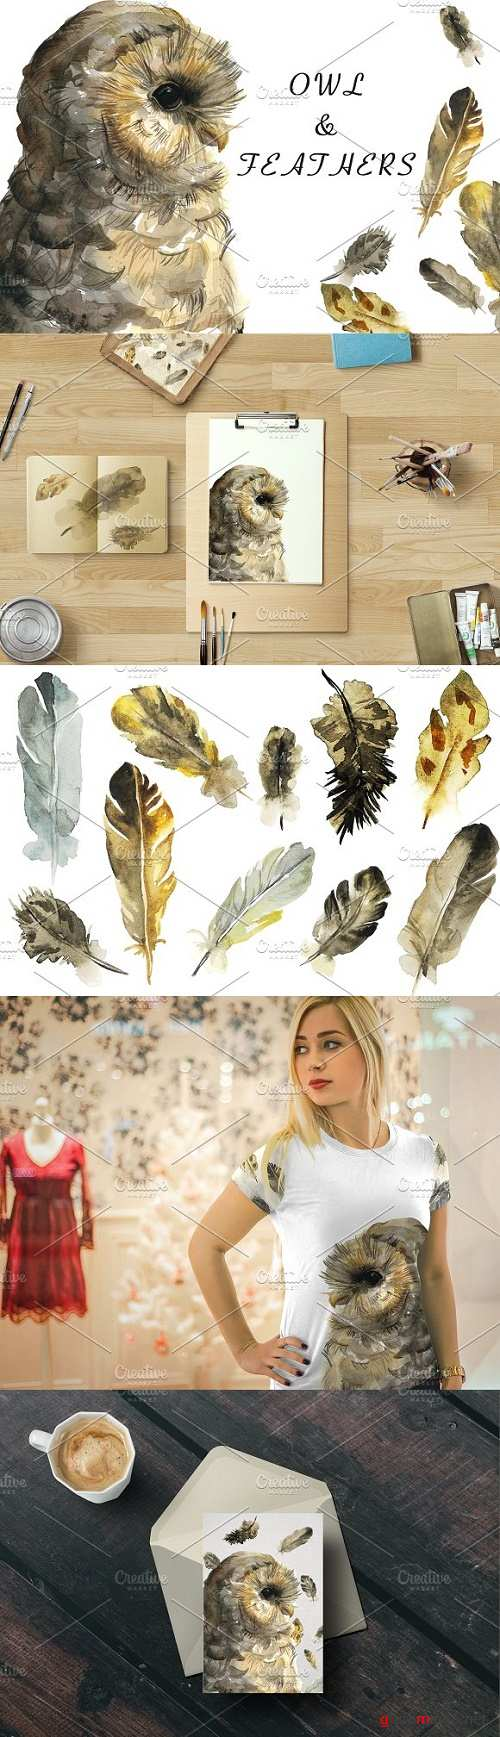 Owl and feathers watercolor set - 1581217